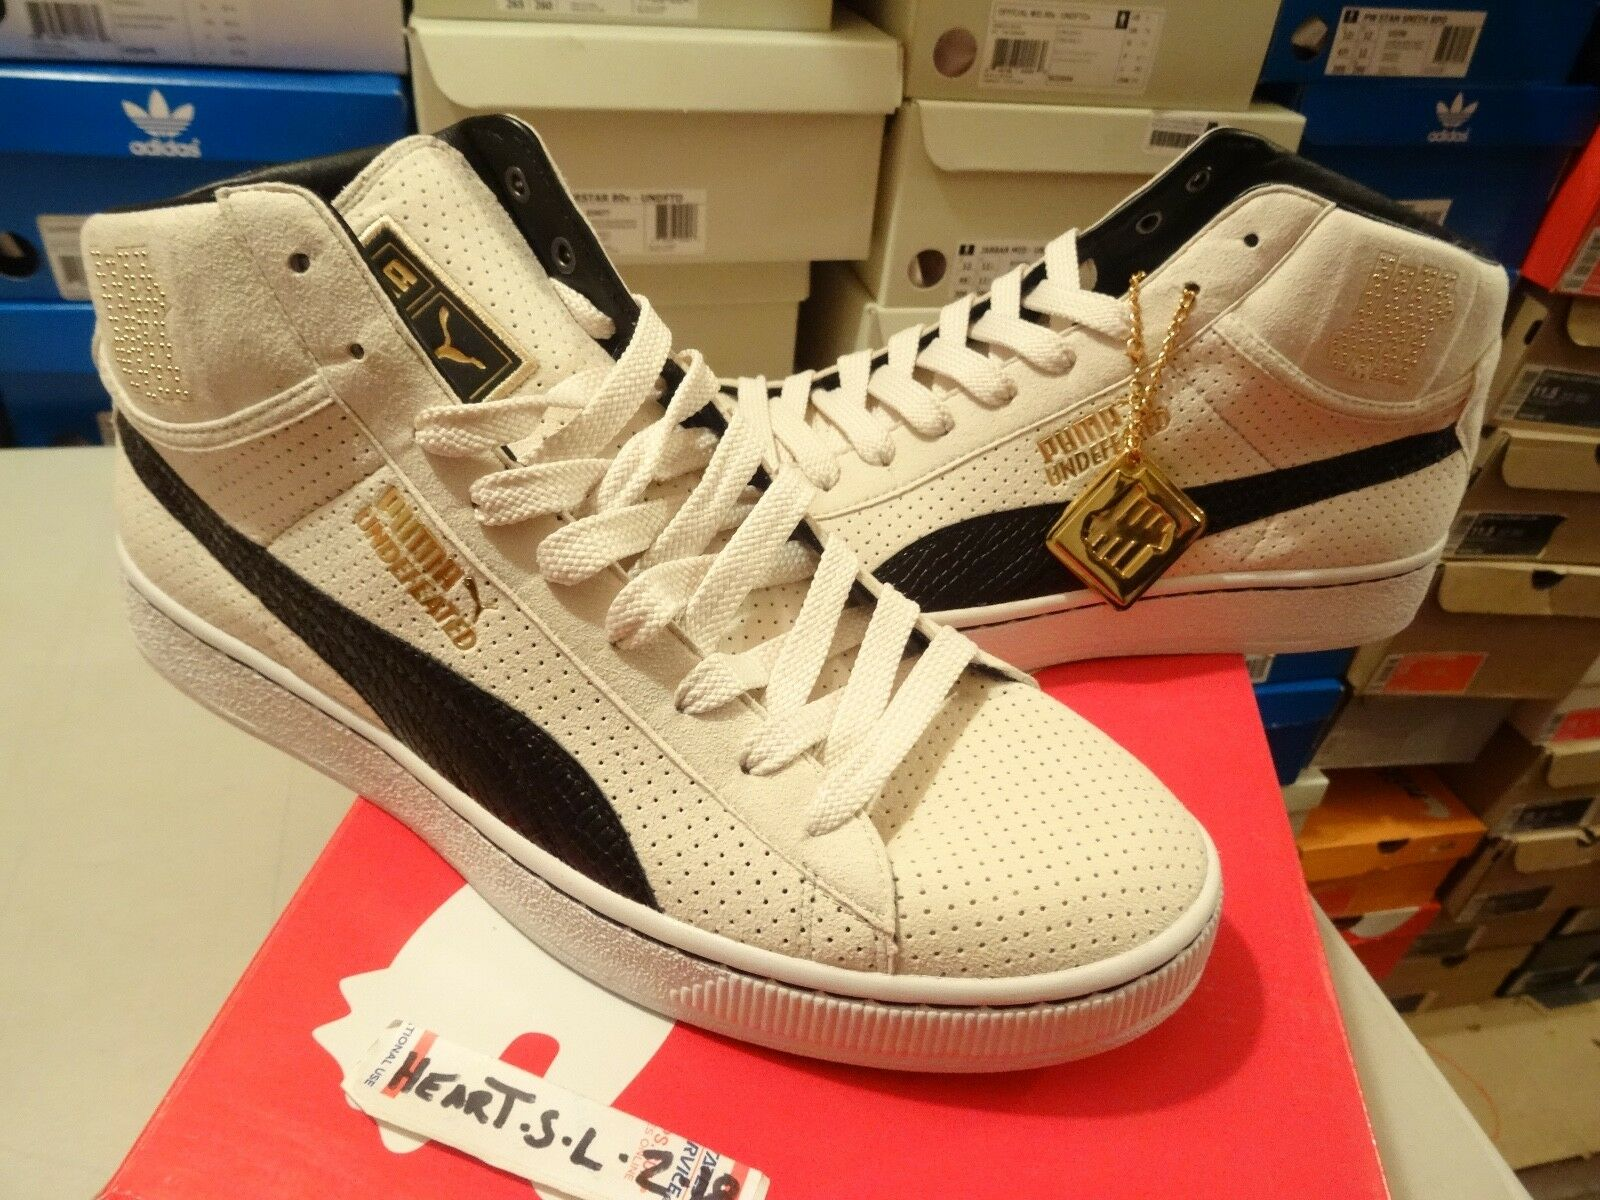 NEW PUMA UNDFTD MID UNDEFEATED 24K gold PACK WHISPER WHITE BLACK 348216-03 SZ 13